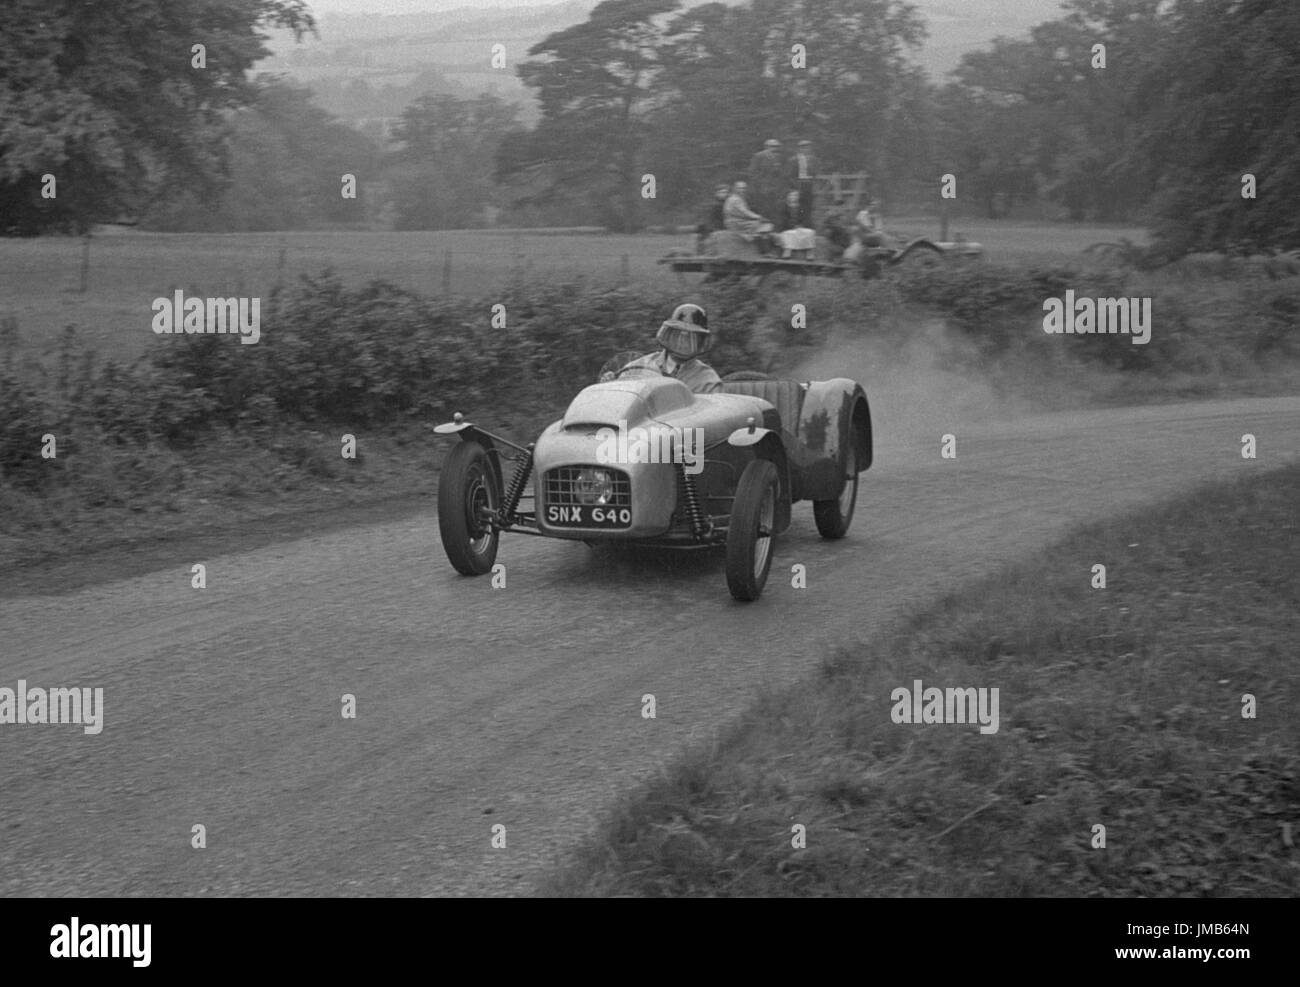 Lotus 6 BMW engine, Perkins. Westbrook Hay speed hillclimb 21.7.56 - Stock Image